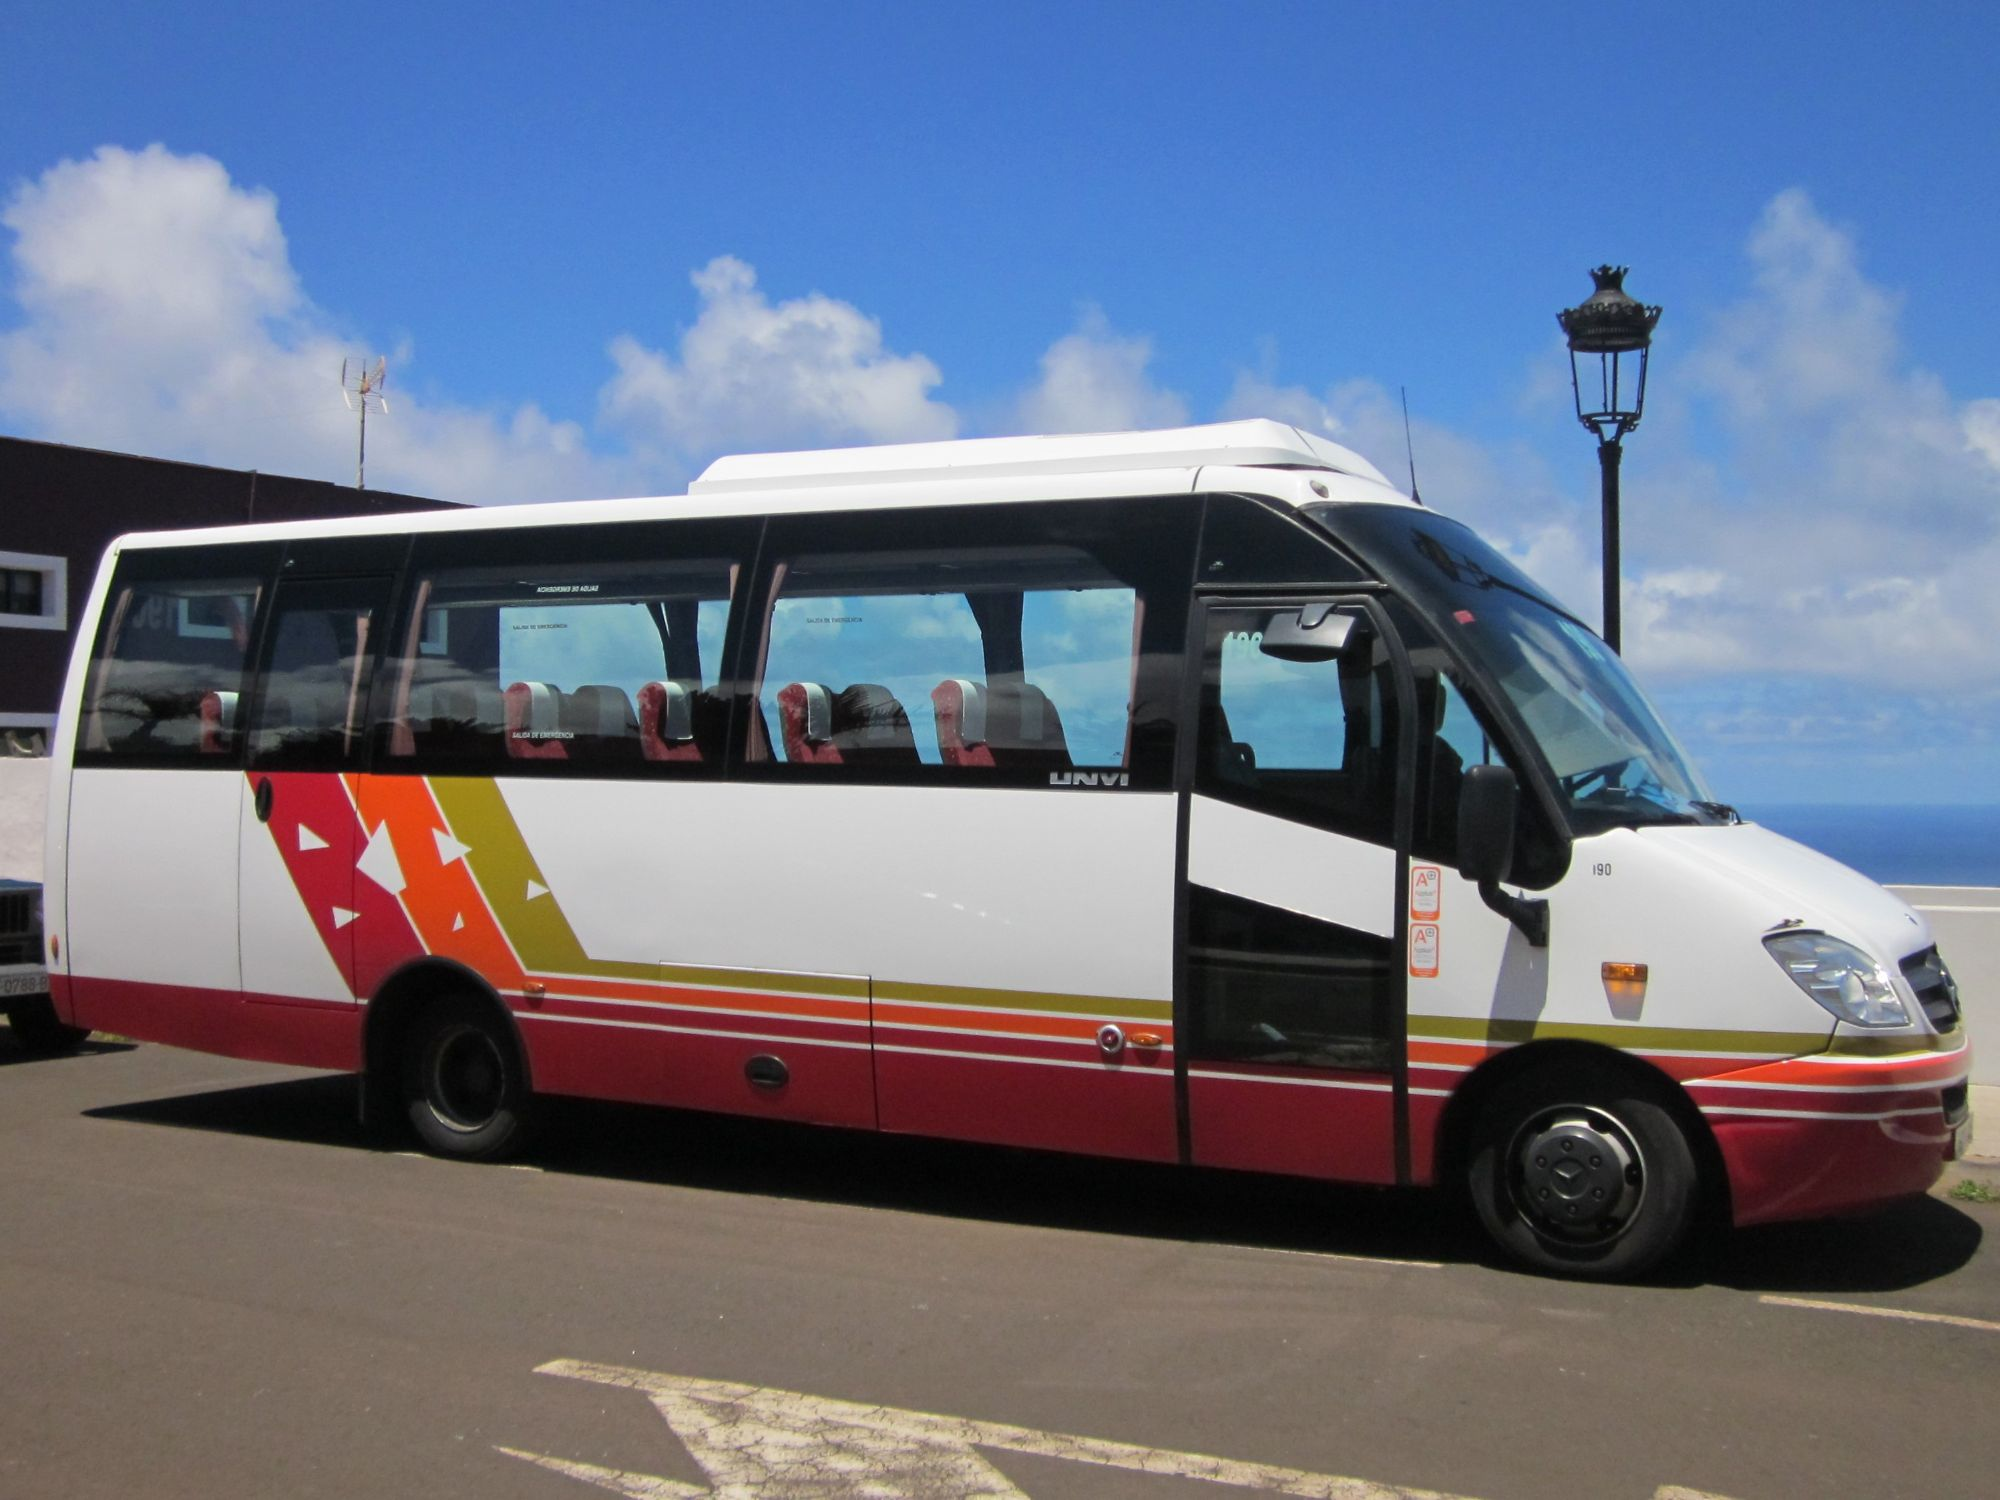 Micro bus used in less-populataed areas